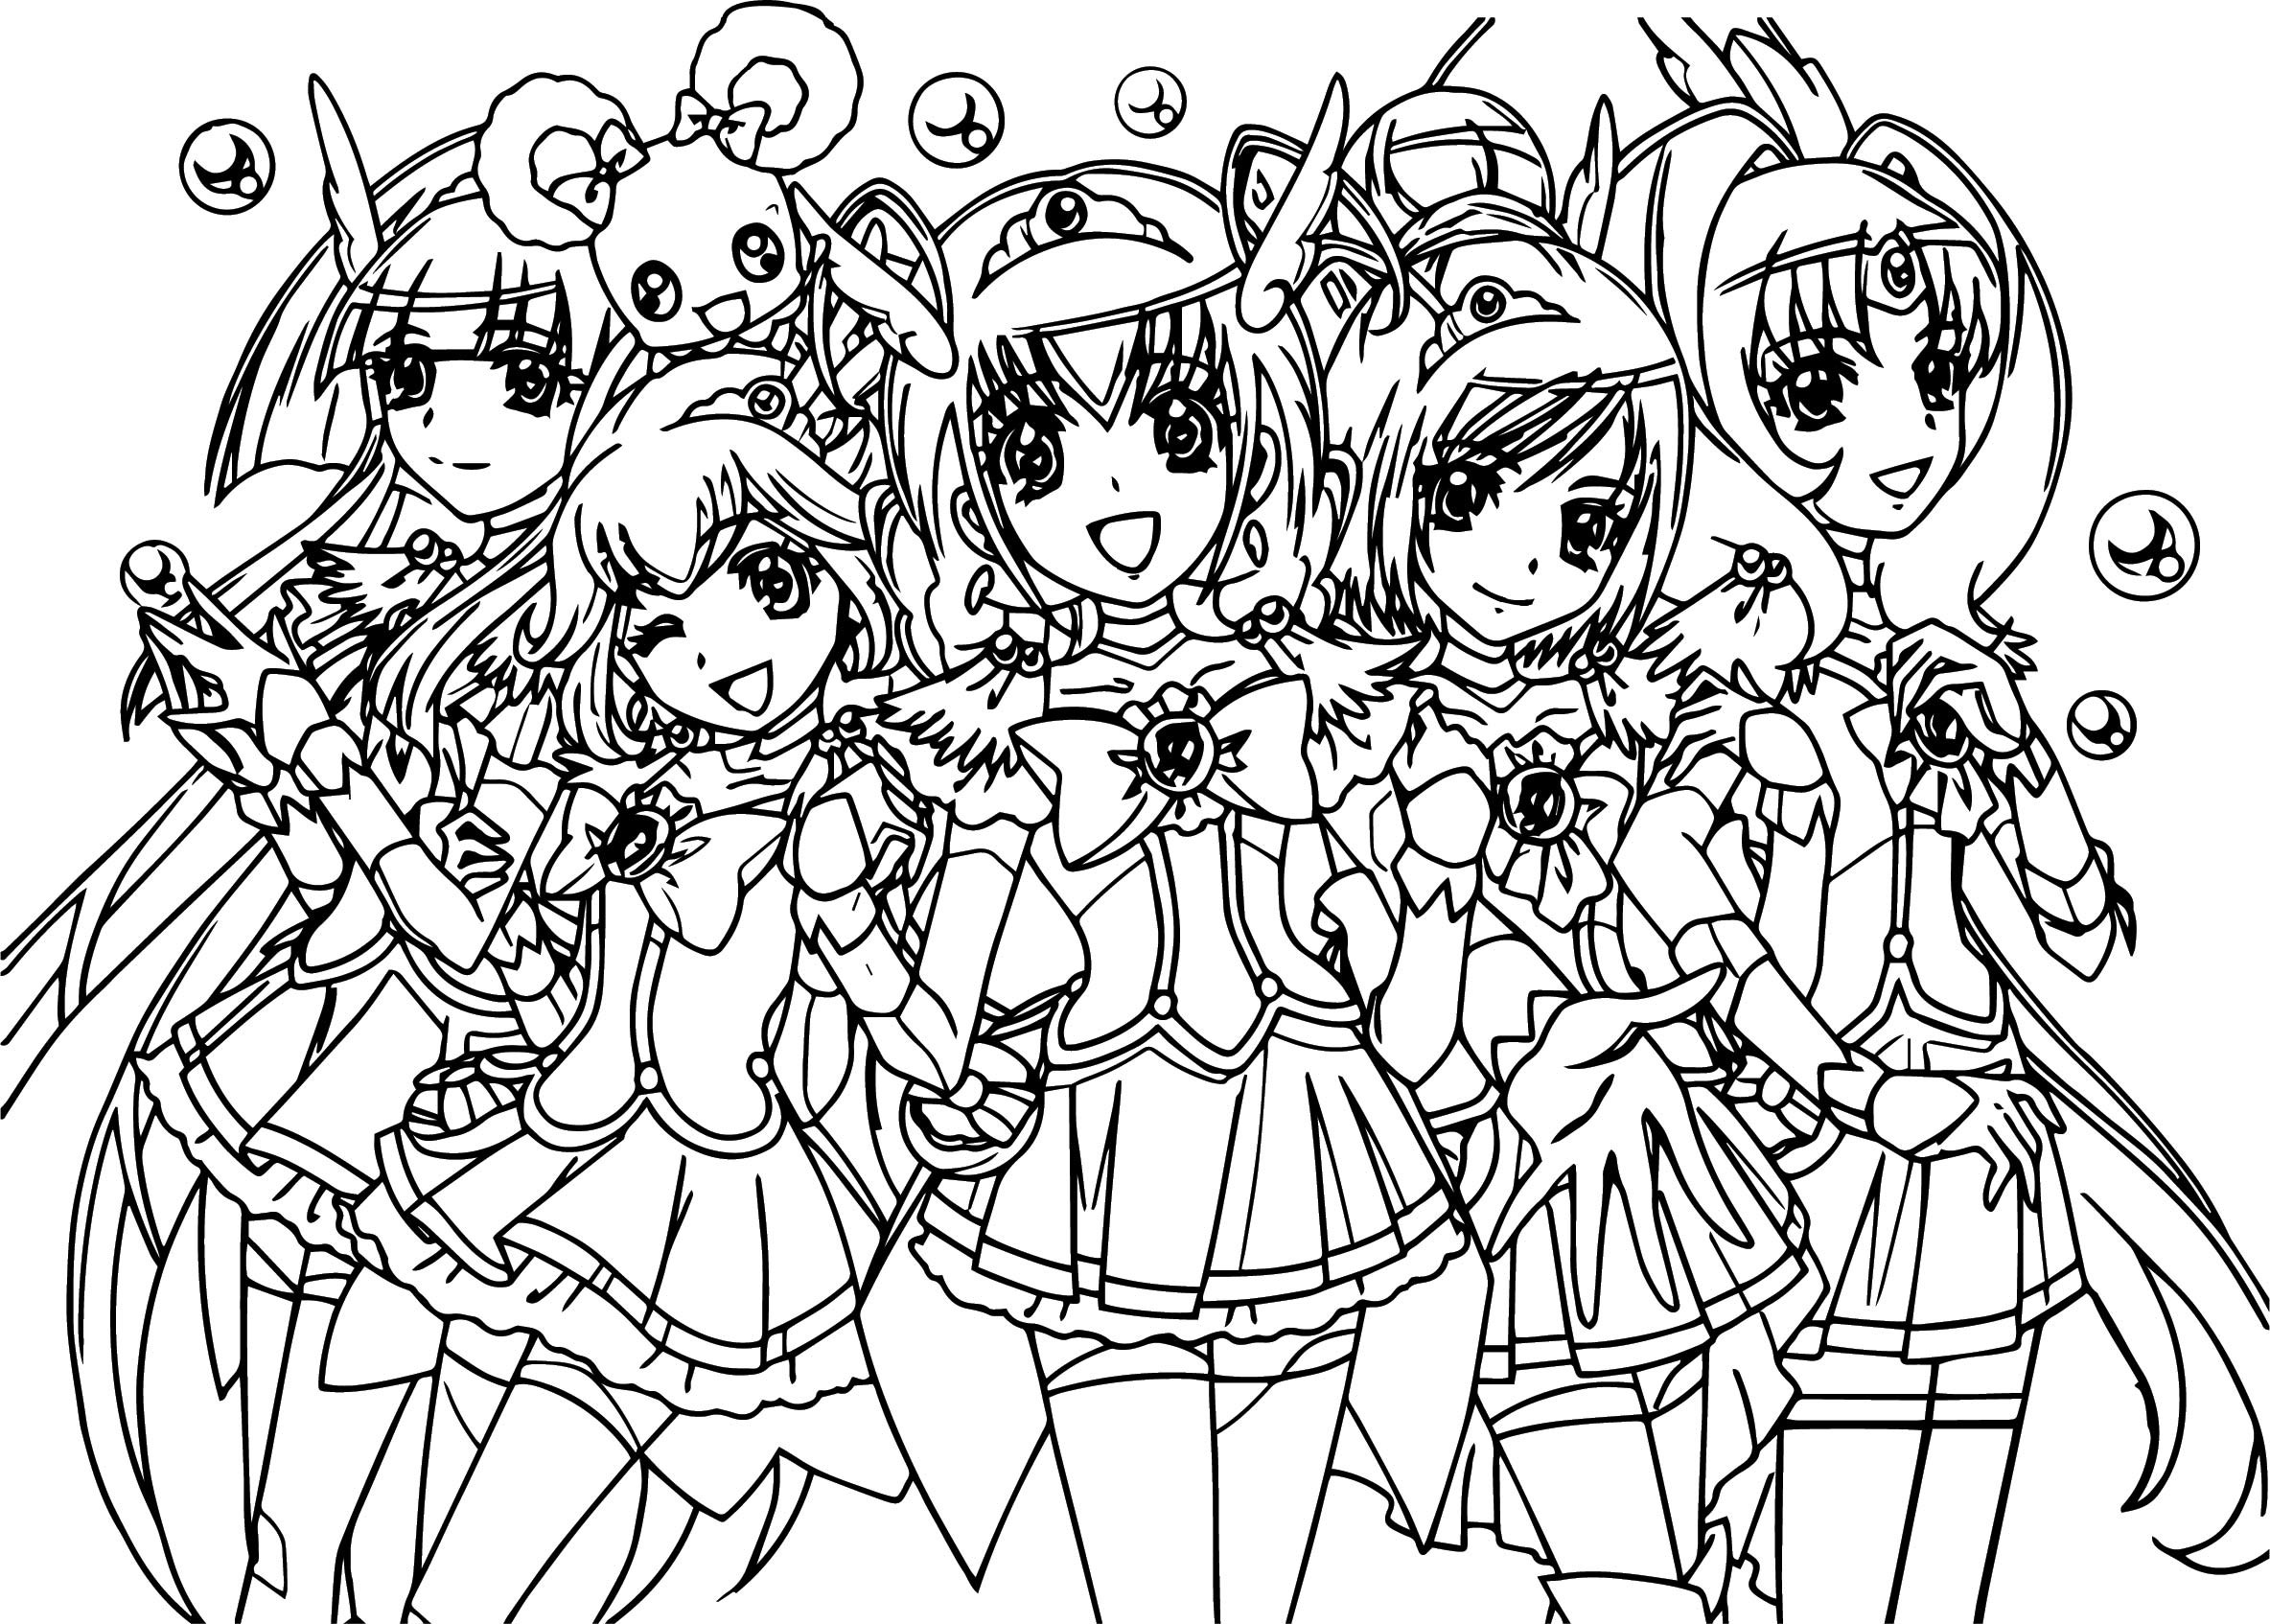 Smile Precure Glitter Force Team Coloring Page